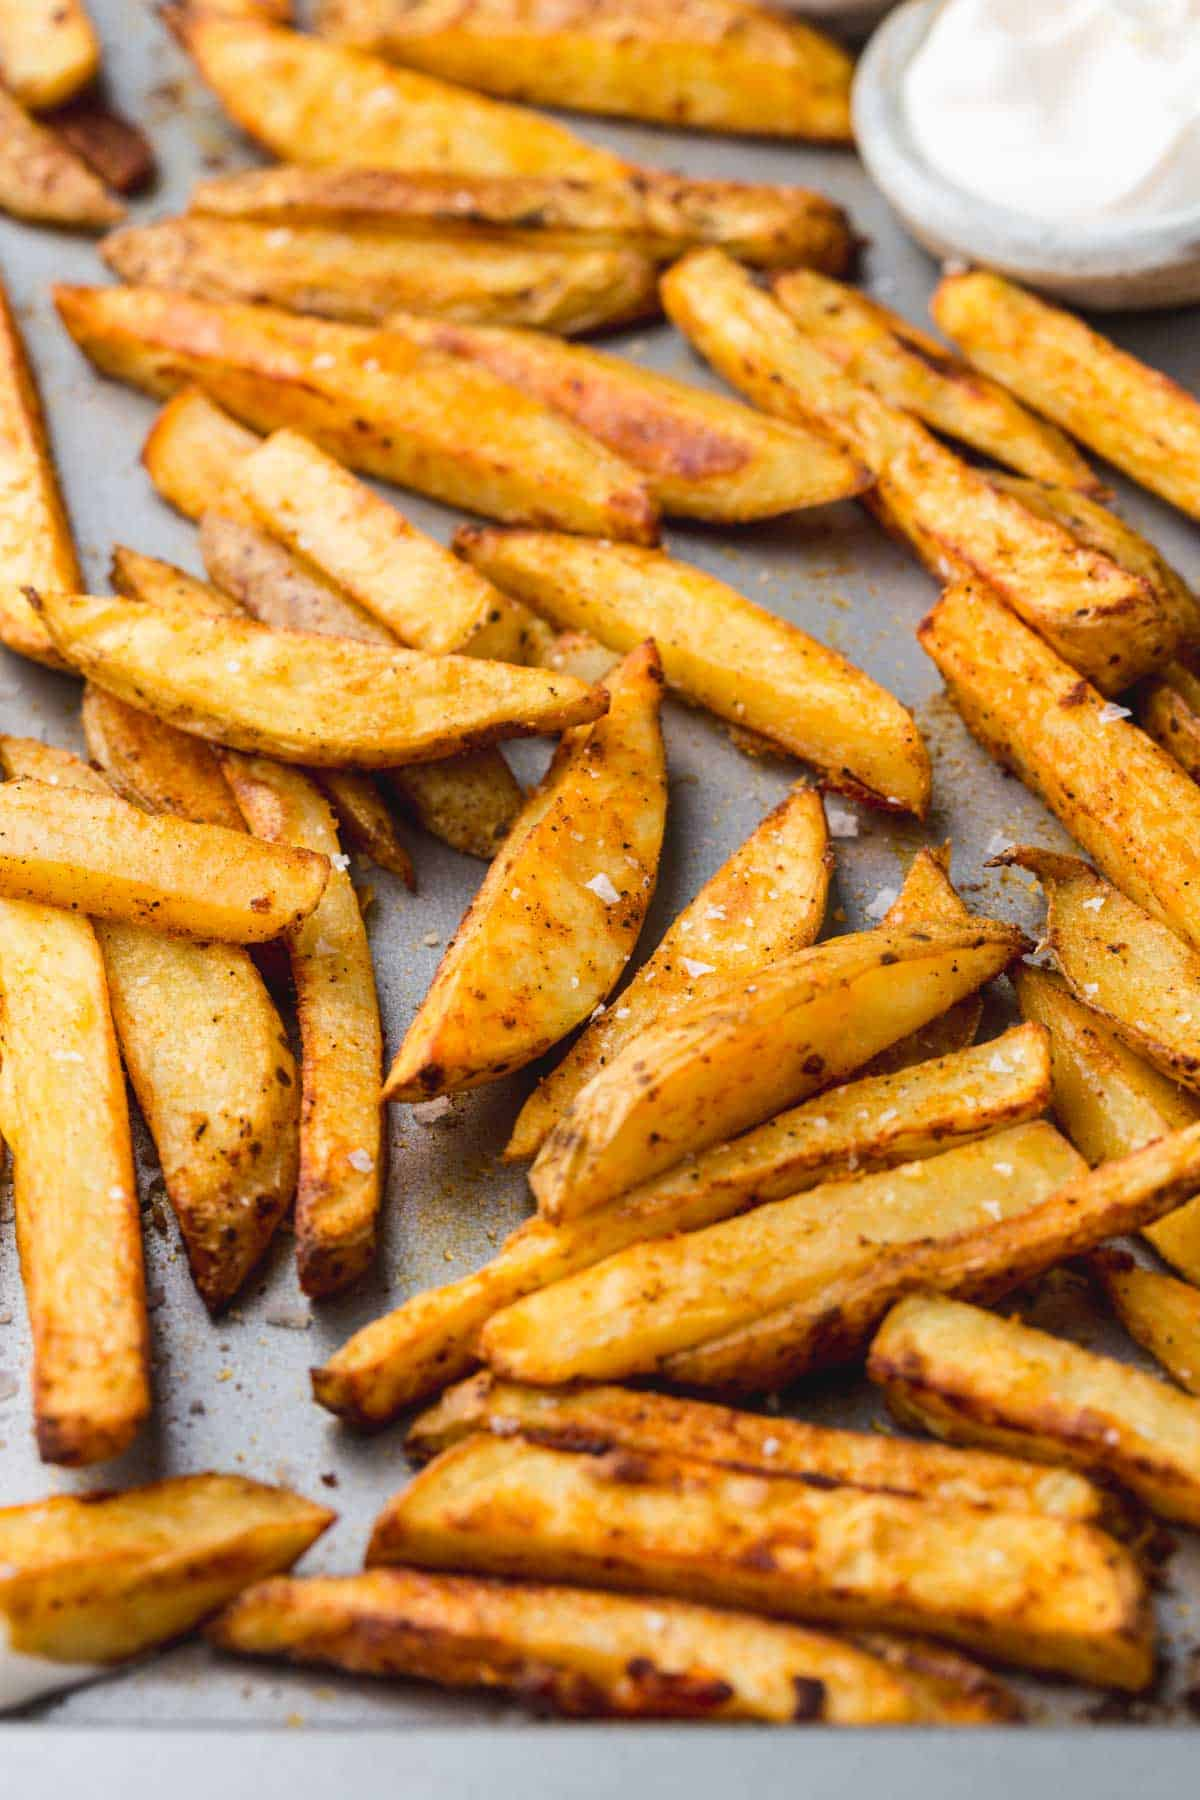 Oven baked fries on a baking pan, seasoned with sea salt flakes